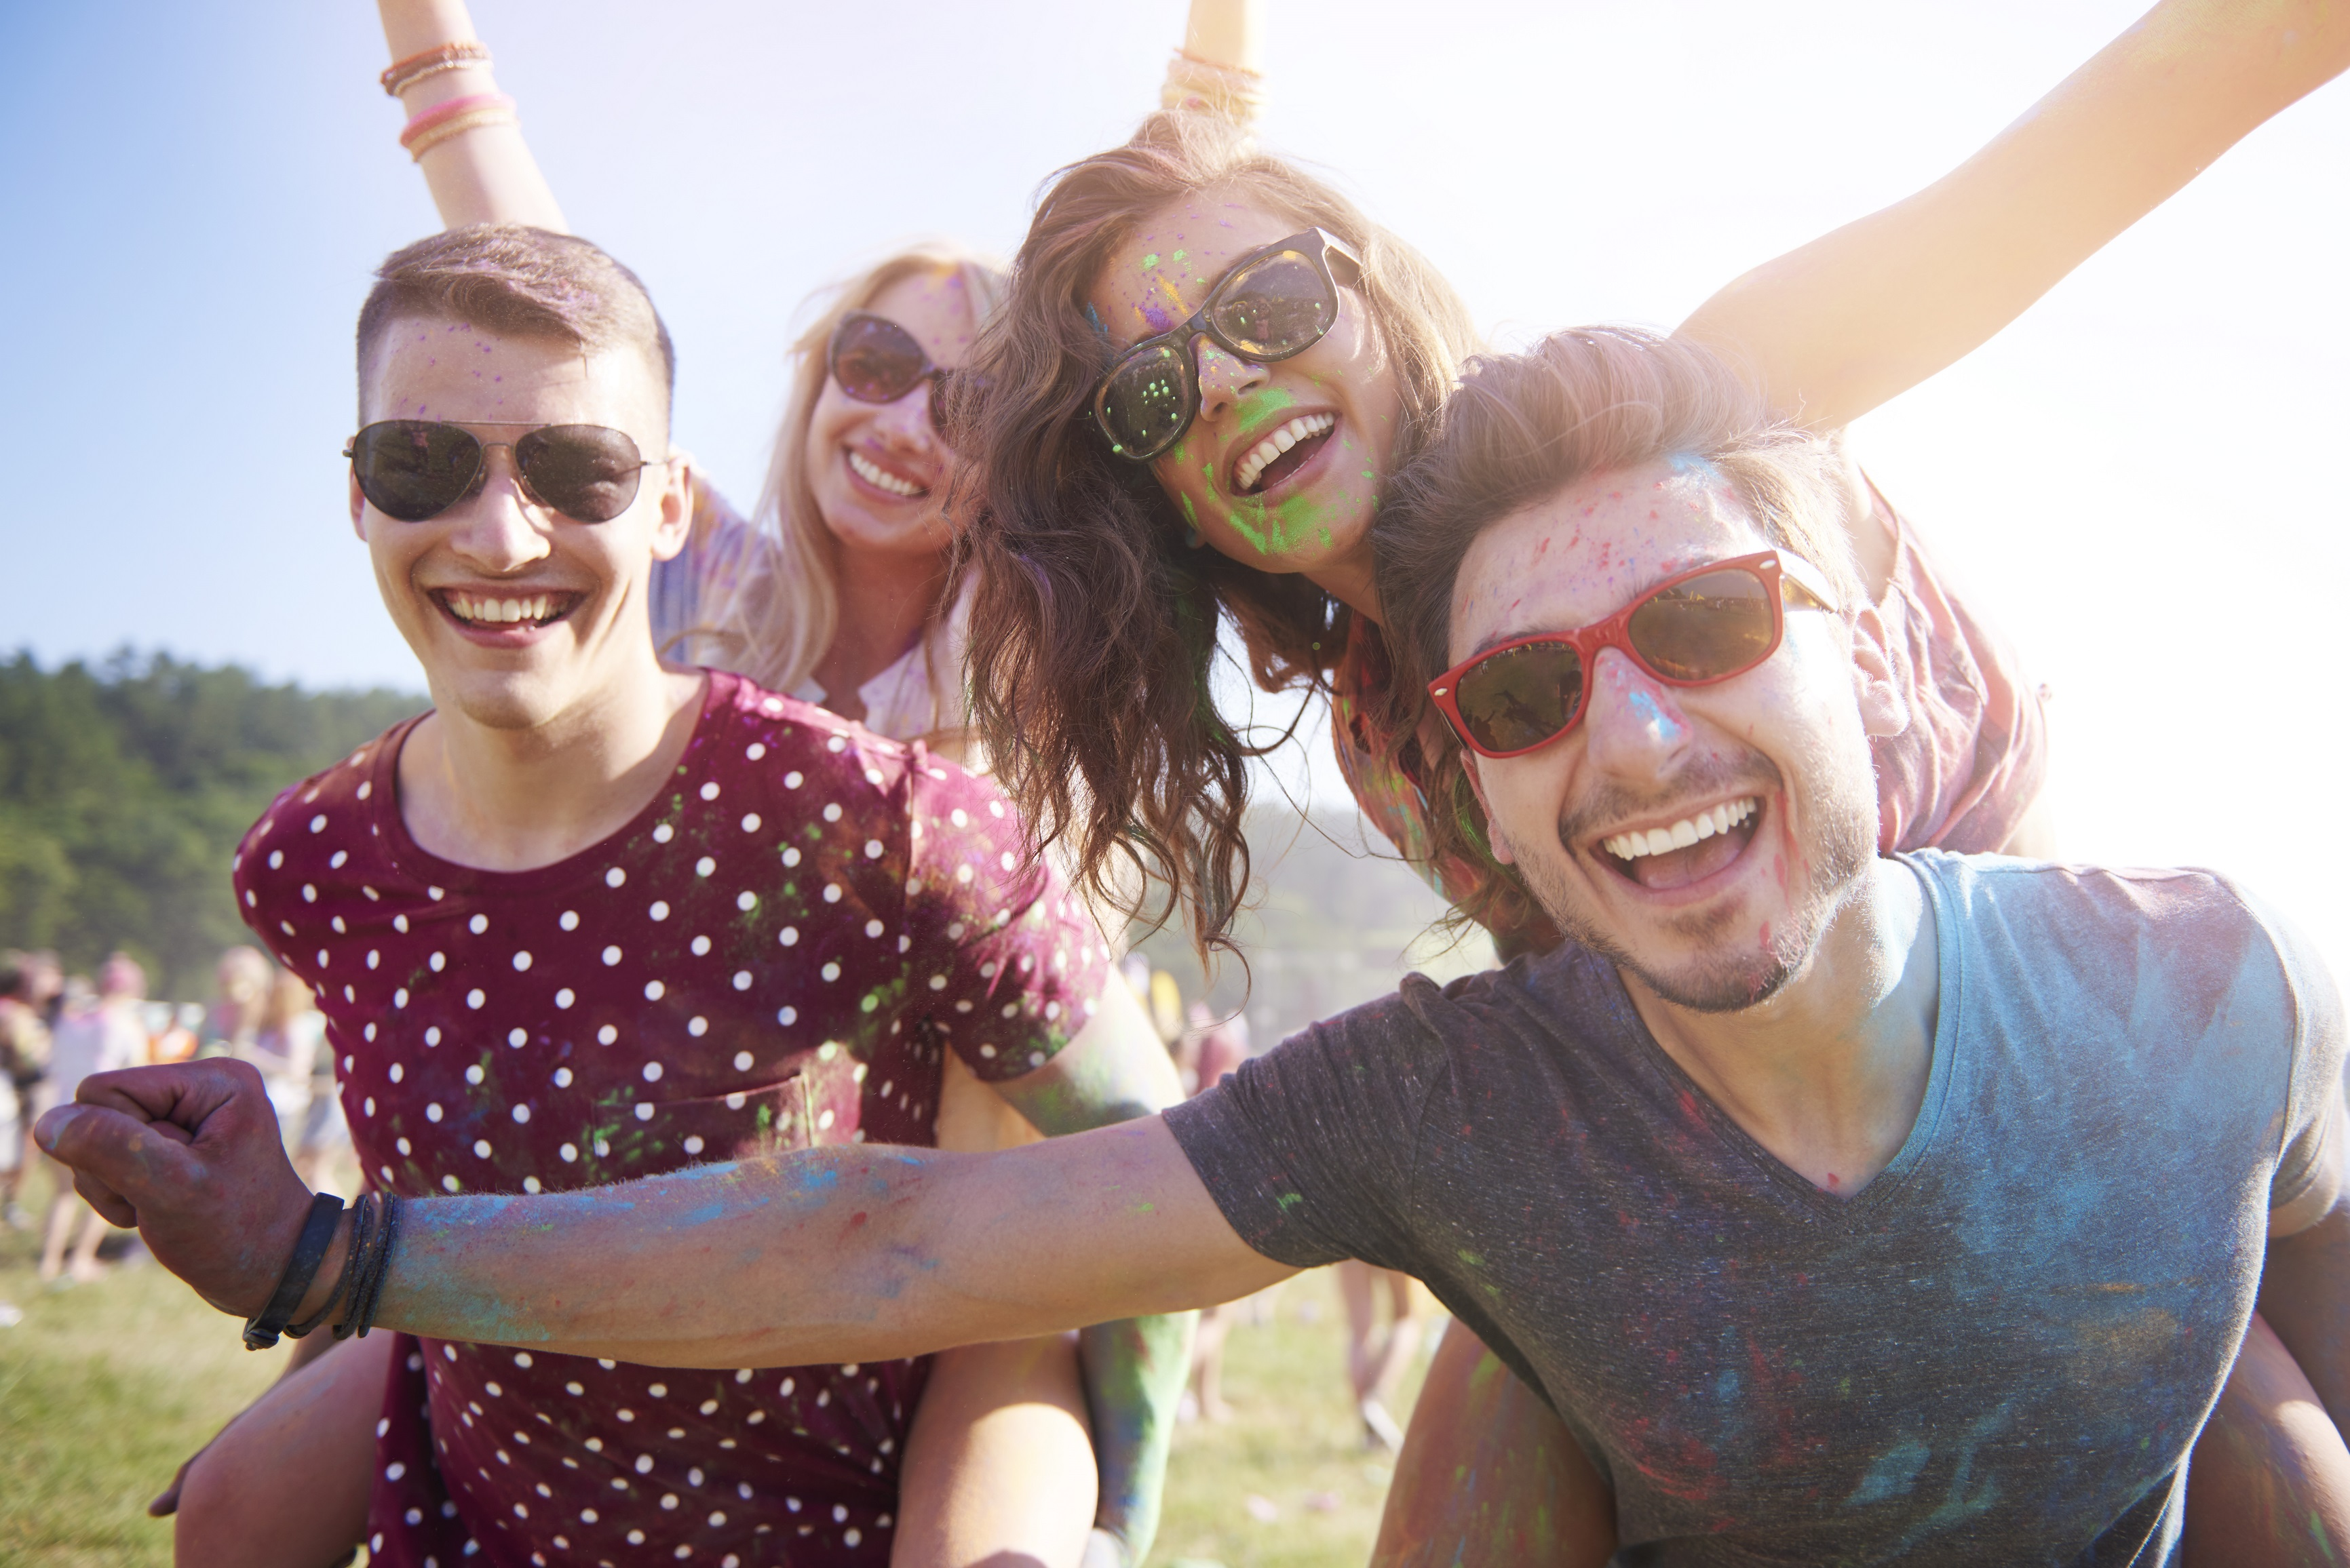 Group of friends having fun at the festival